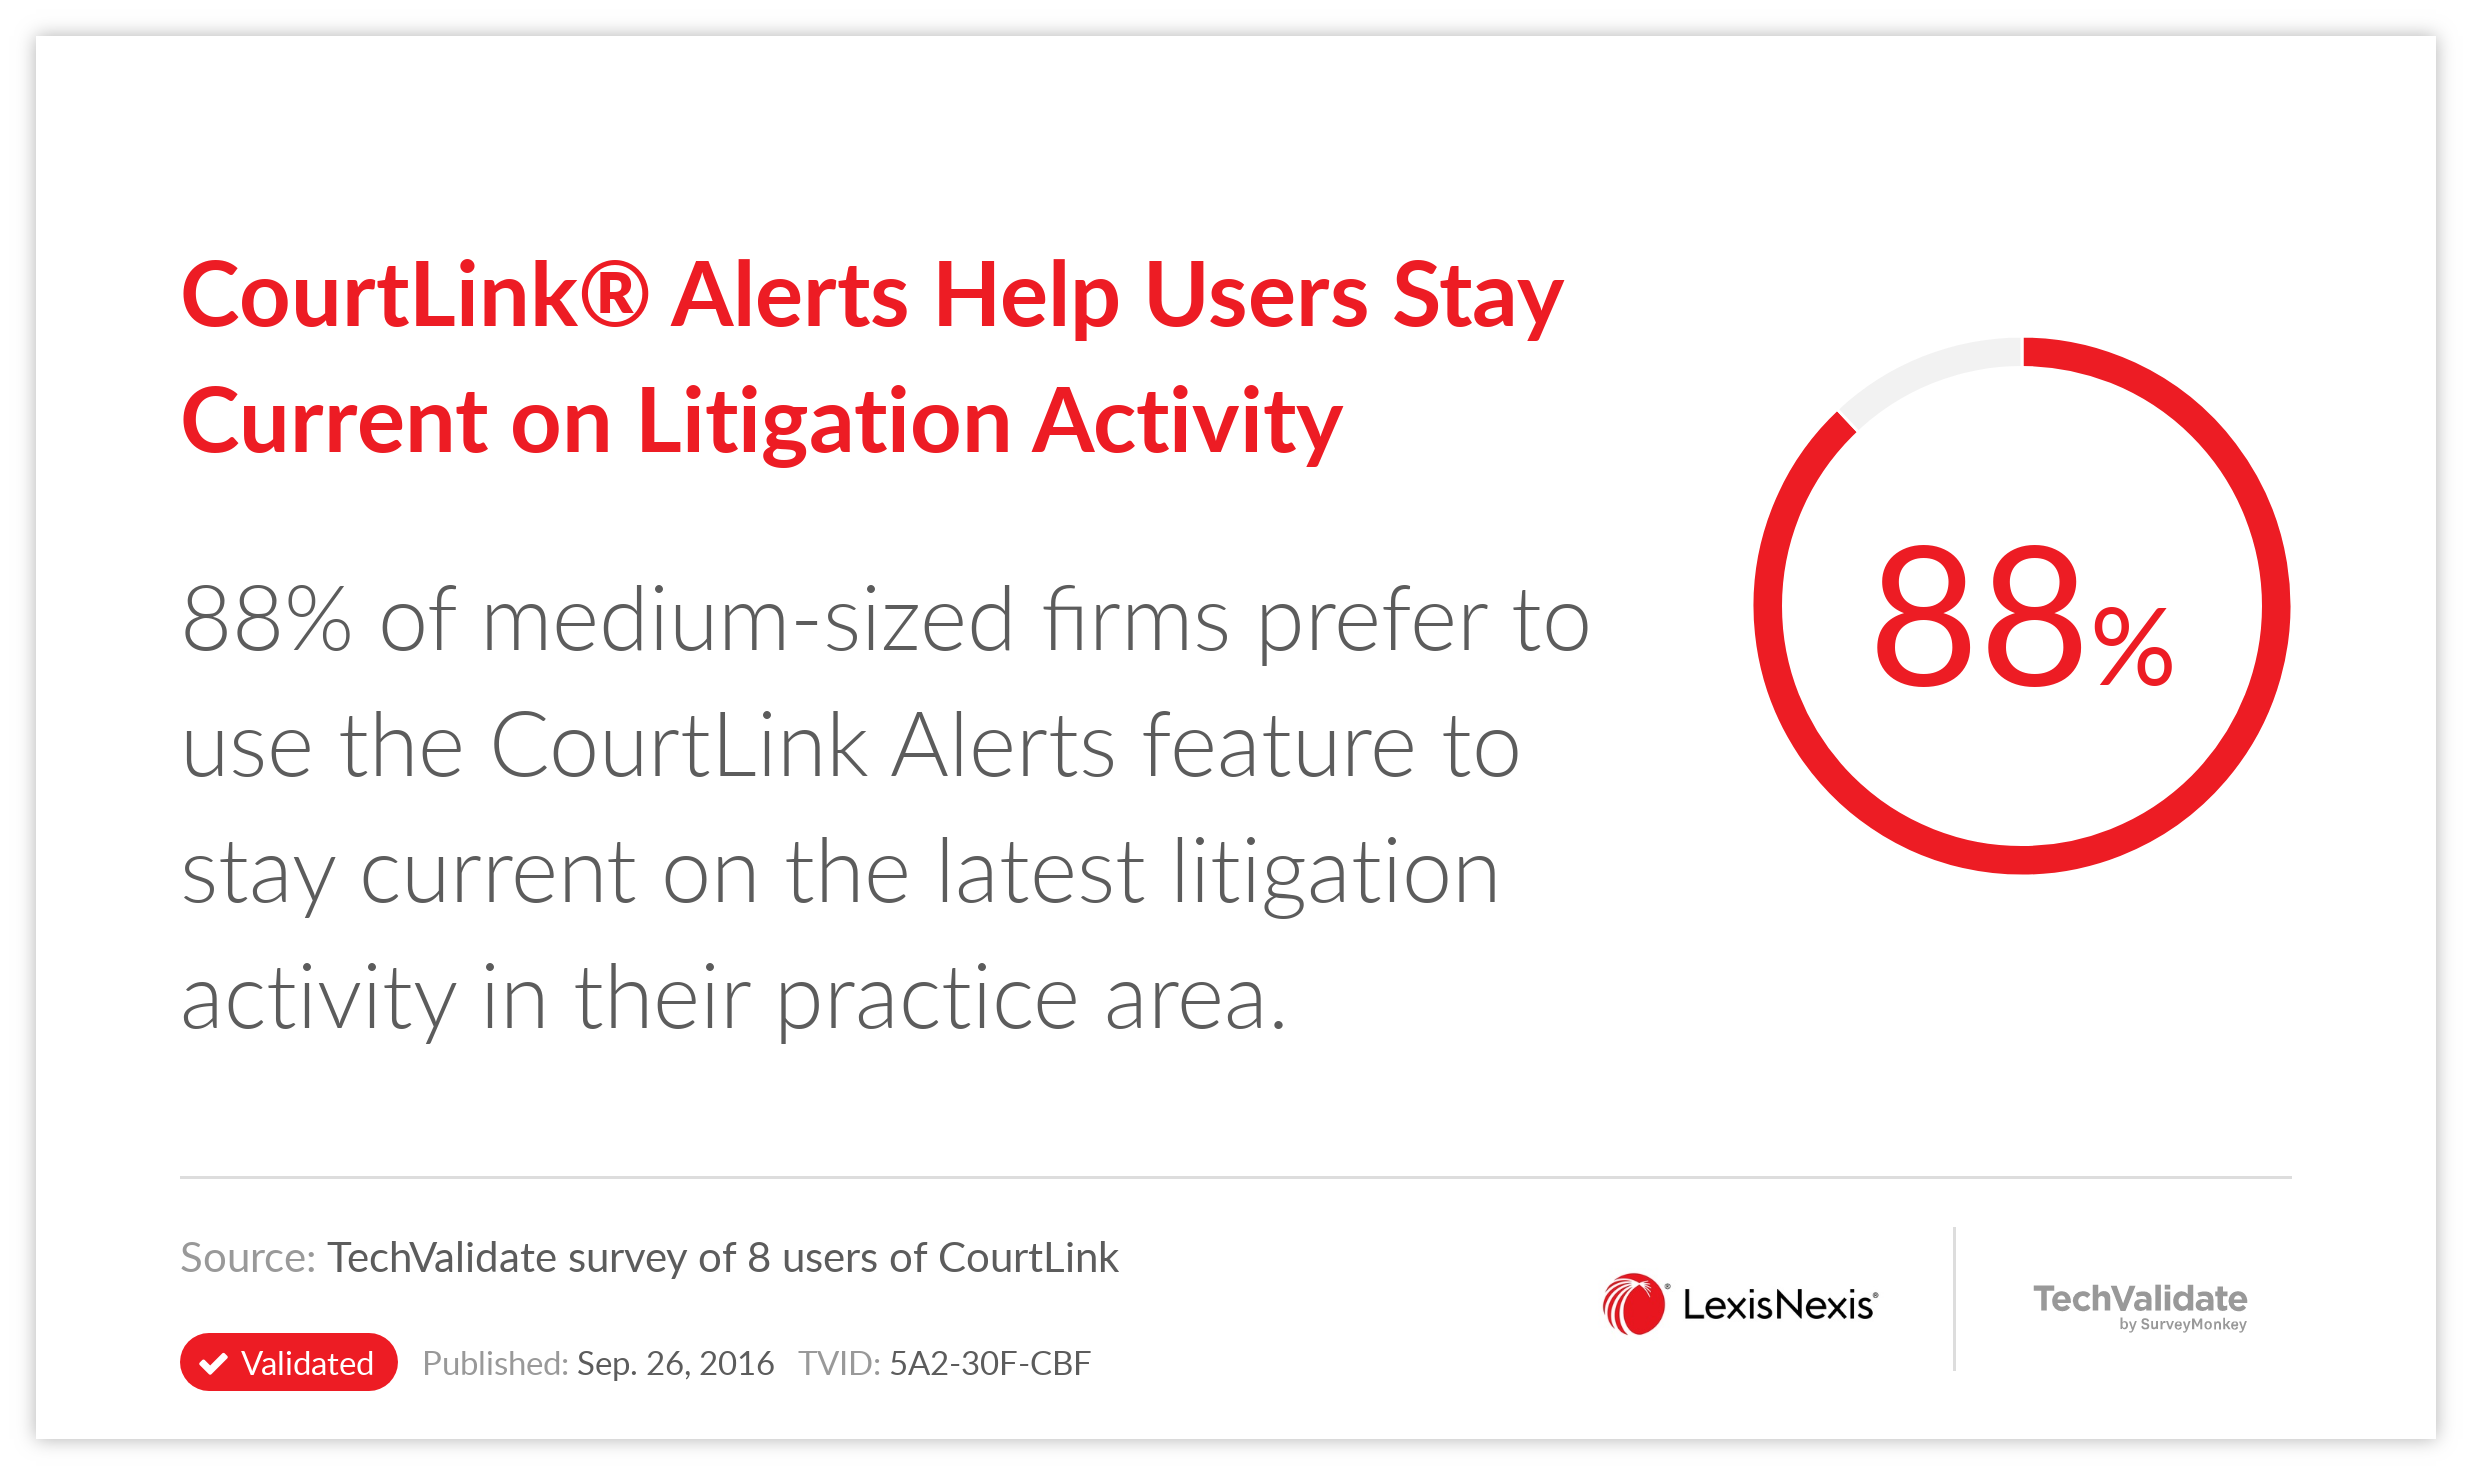 CourtLink(R) Alerts Help Users Stay Current on Litigation Activity